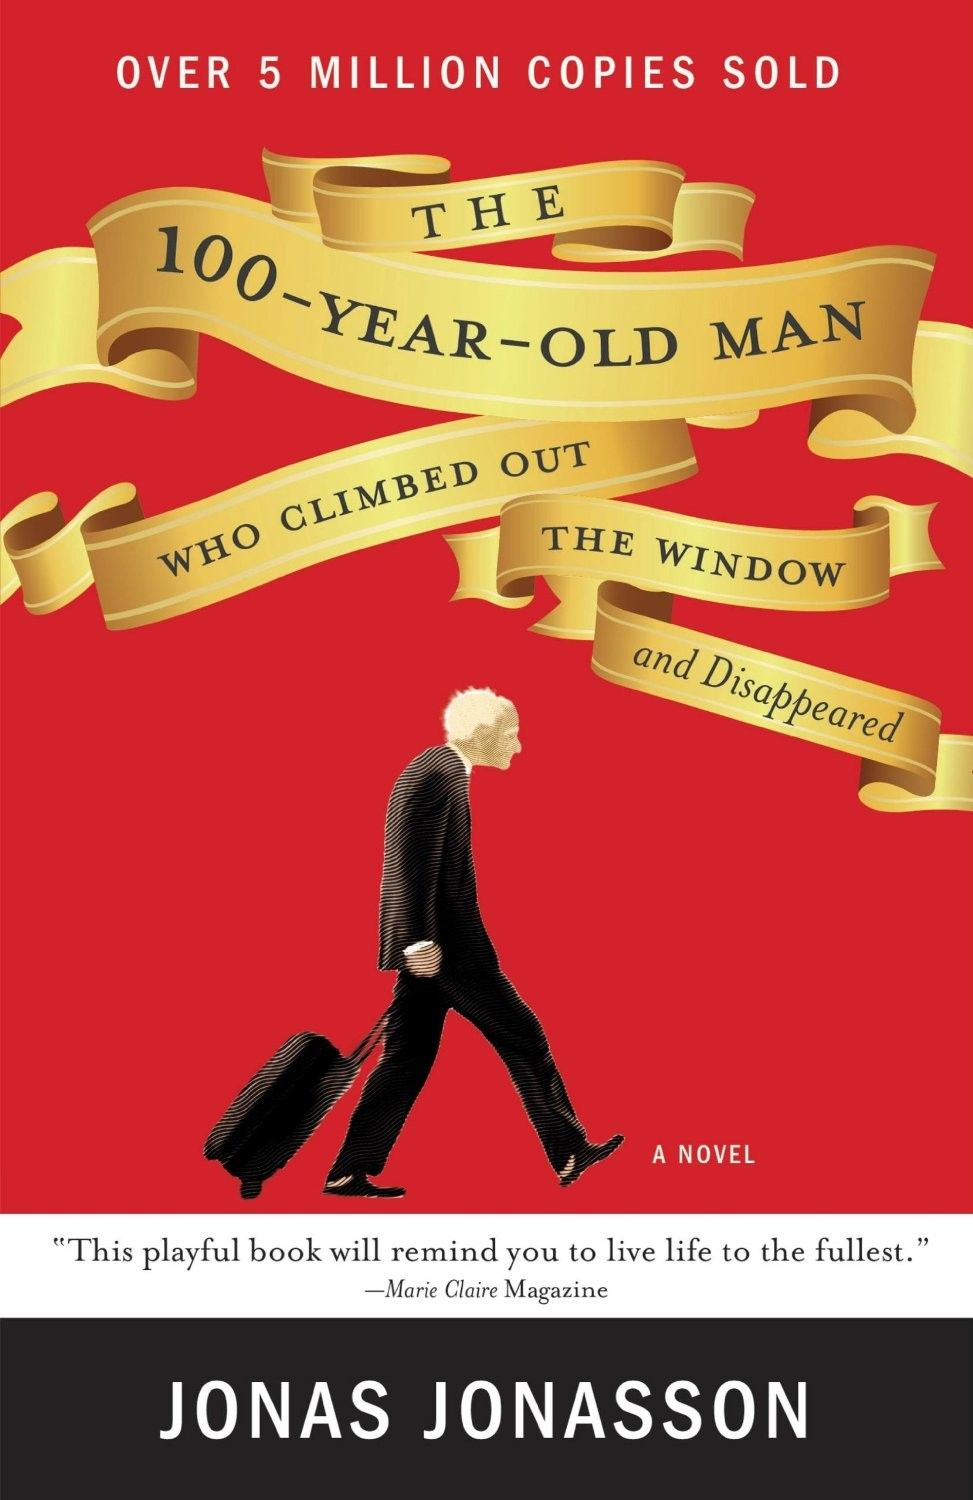 hundred year old man (us cover)